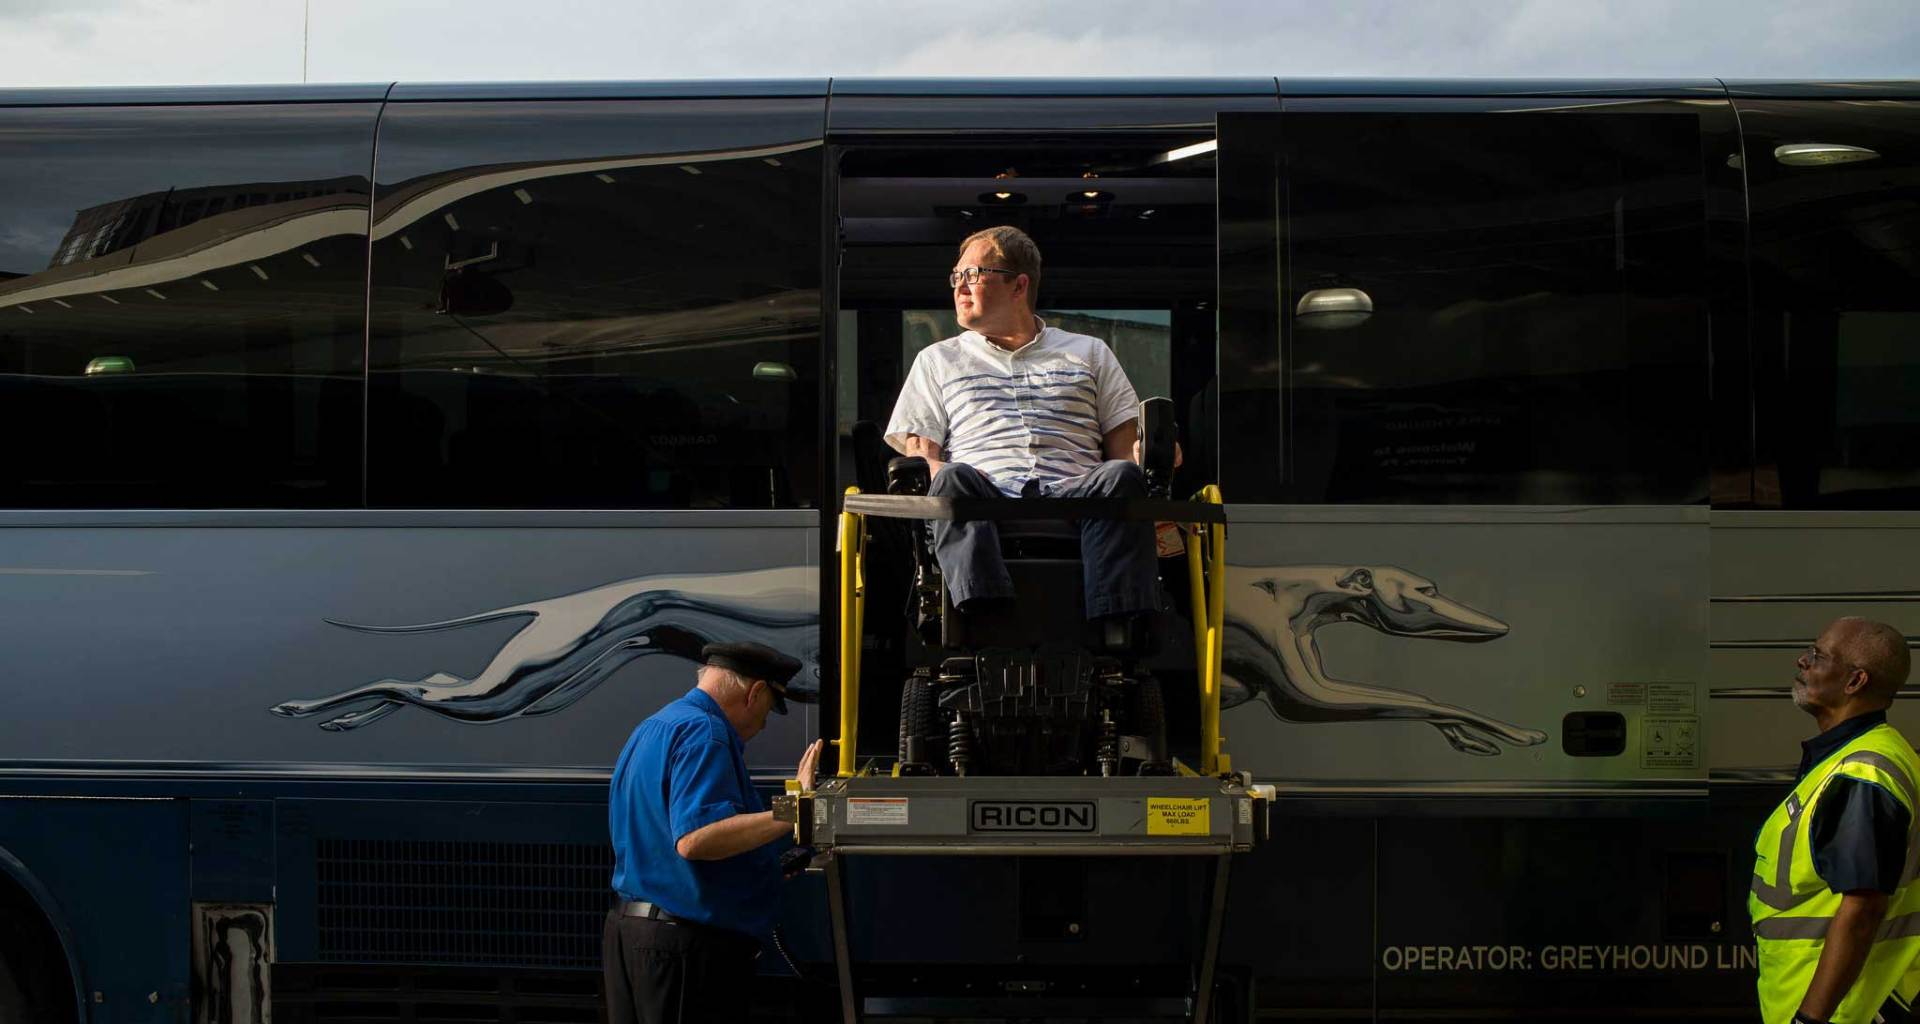 John Morris, seated in his wheelchair on the lift of a Greyhound Bus.